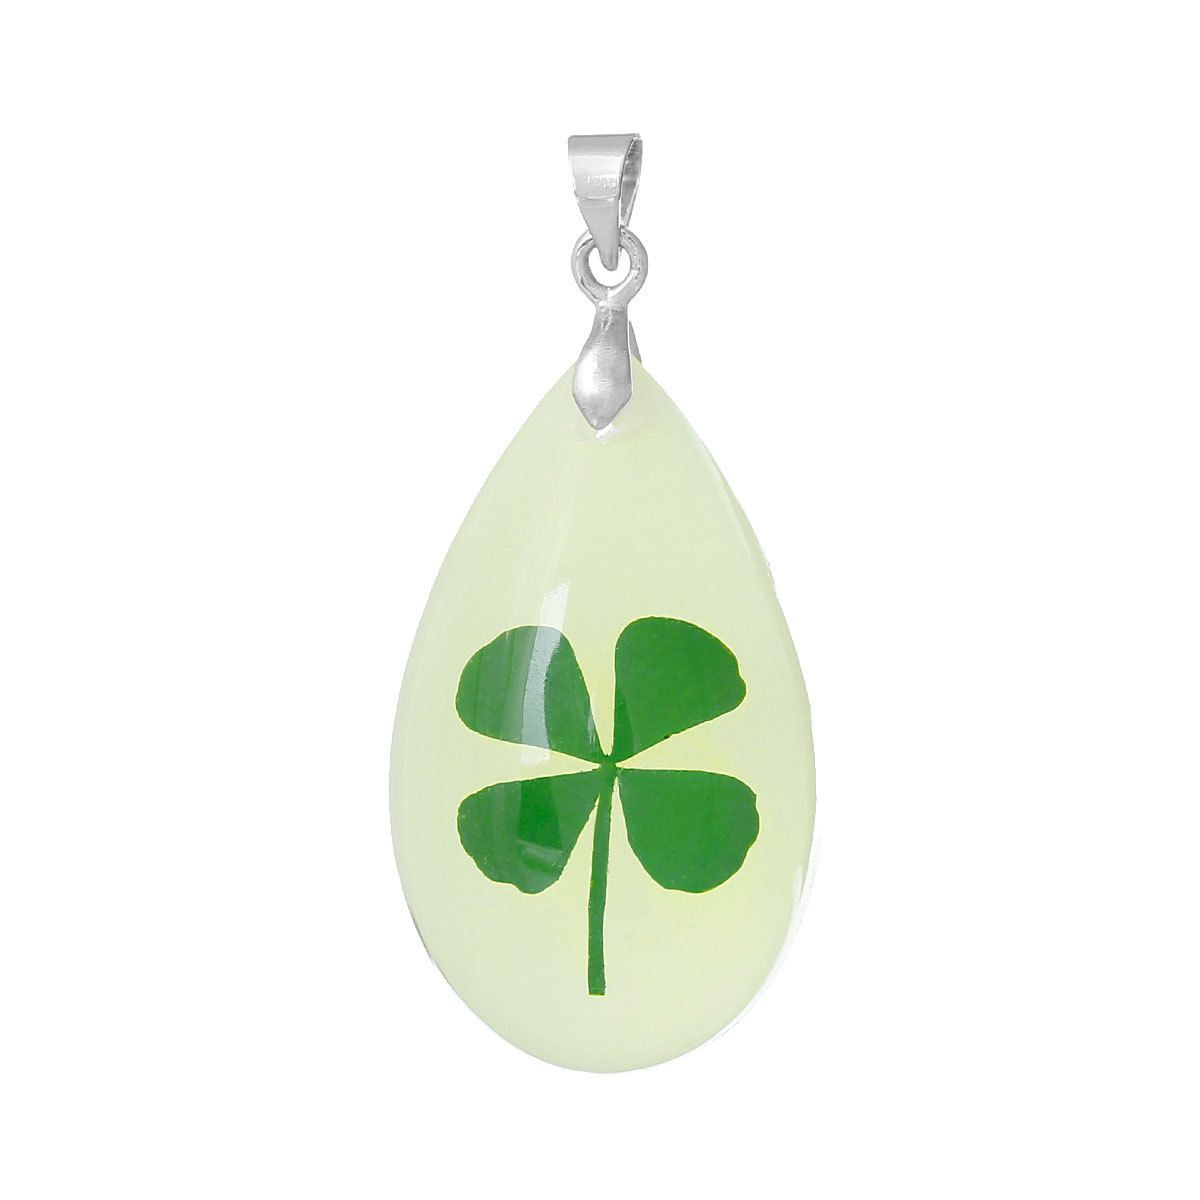 Green lucky shamrock necklace four leaf clover charm emerald green - Resin Charm Pendants Teardrop Light Green Made With Real Leaf Clover Pattern Glow In The Dark X Resin Pendants Resin Pendants Flower Resin Pendants